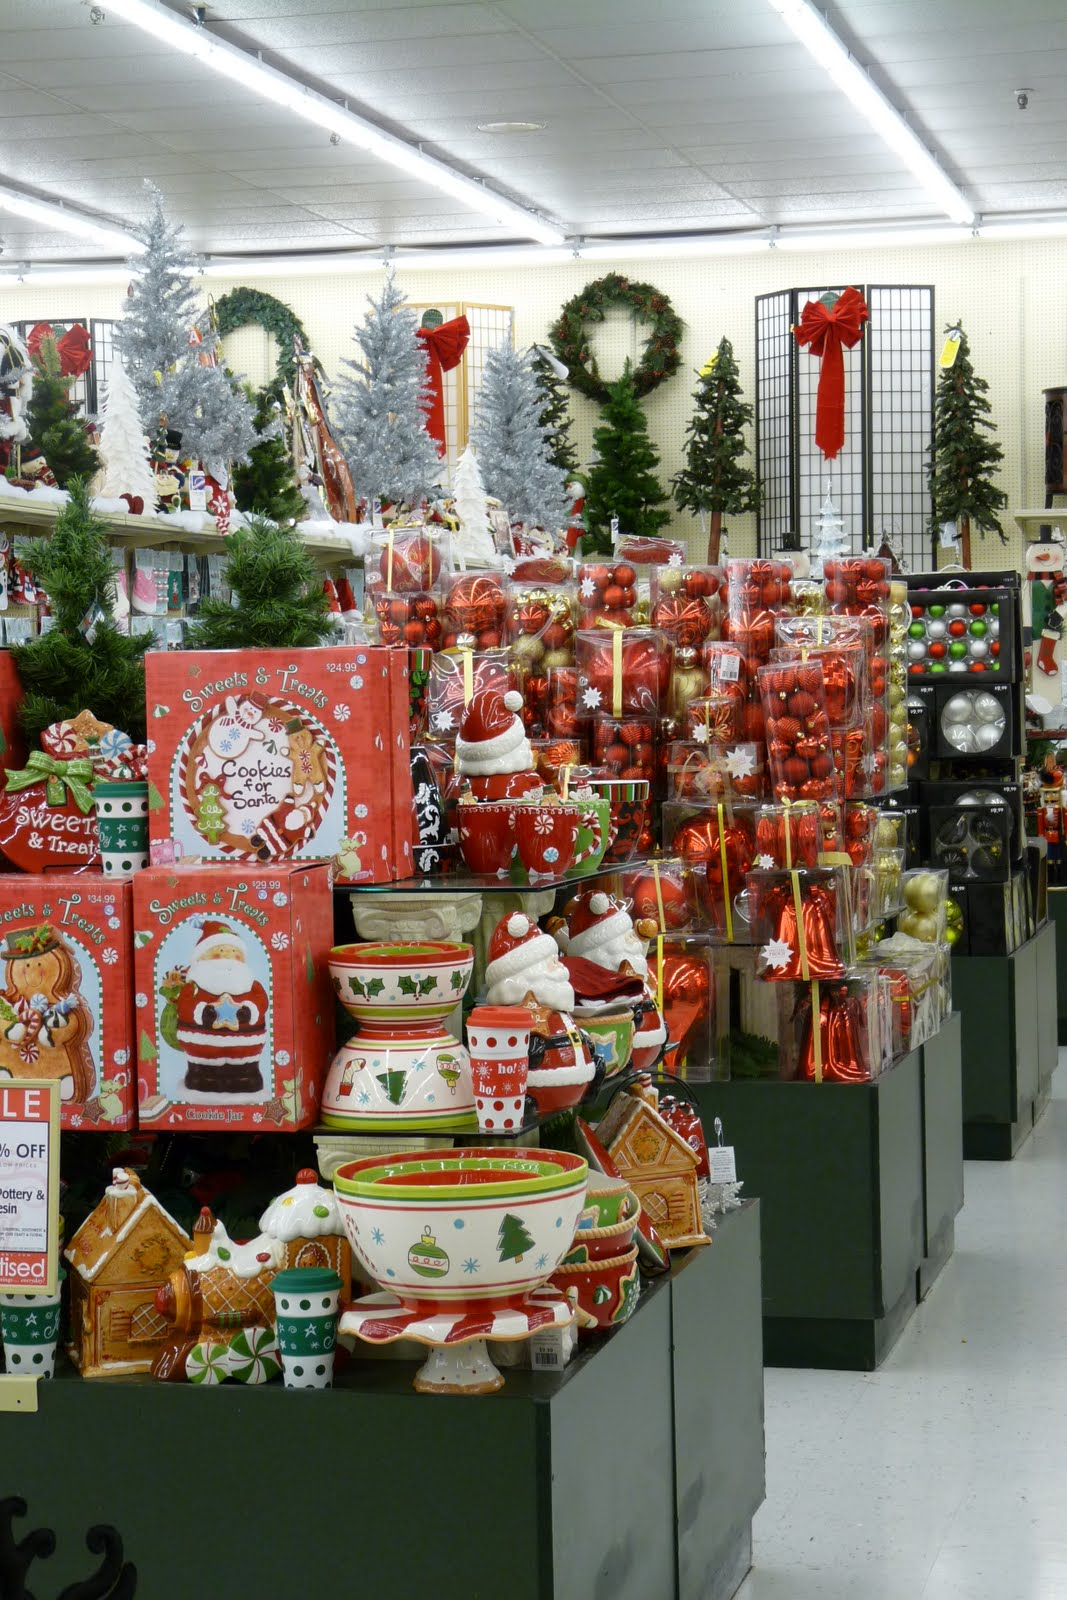 there is a fabulous christmas sectionnow i dont know if it is here year roundbut i just couldnt get enough of it - Hobby Lobby Christmas